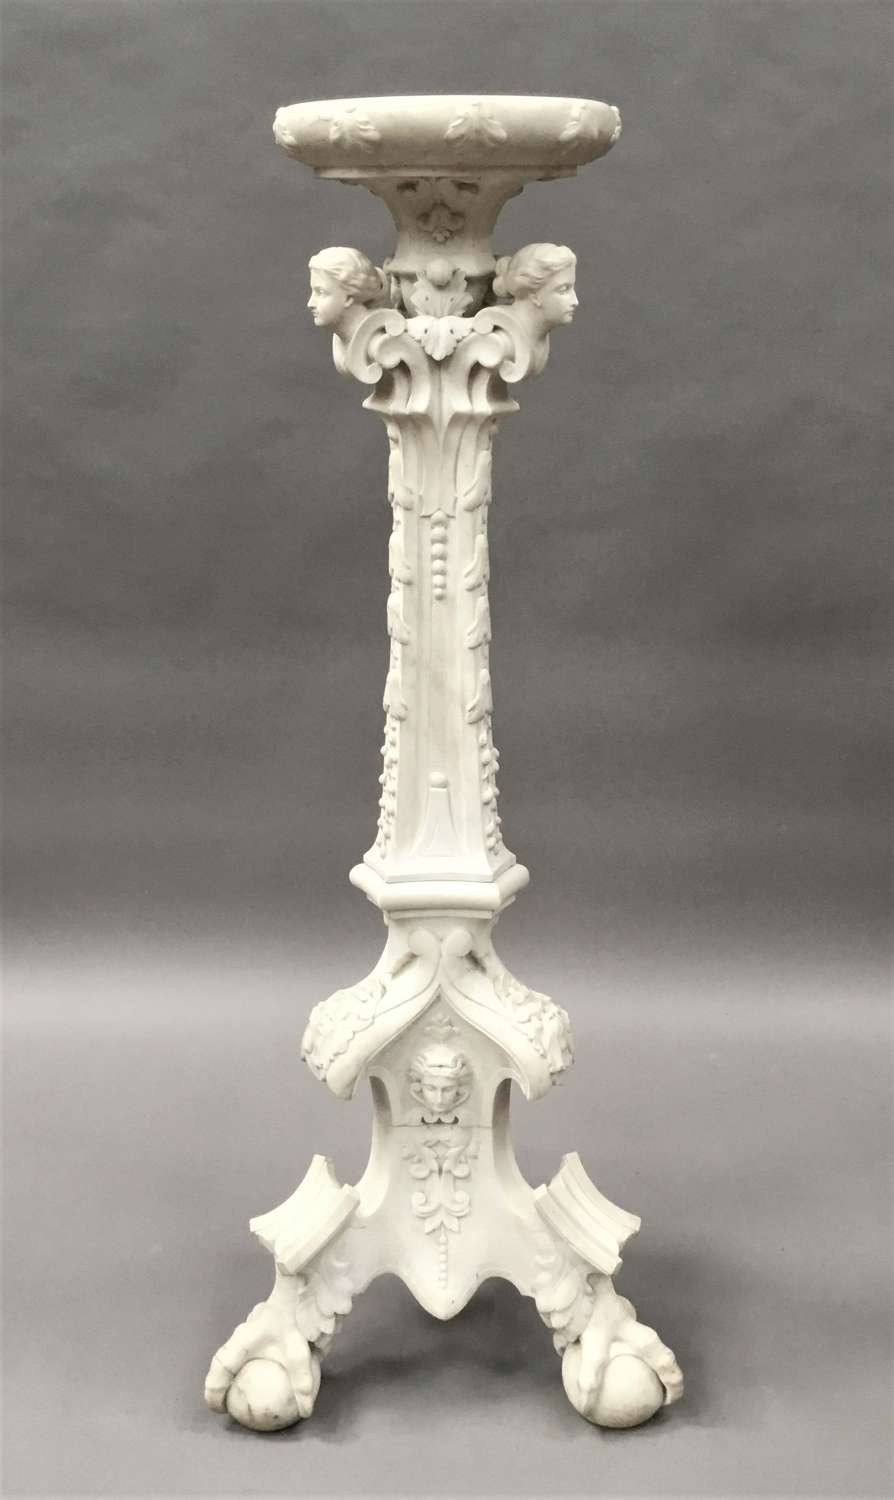 C19th Italian carved 'Carrara' marble torchere stand